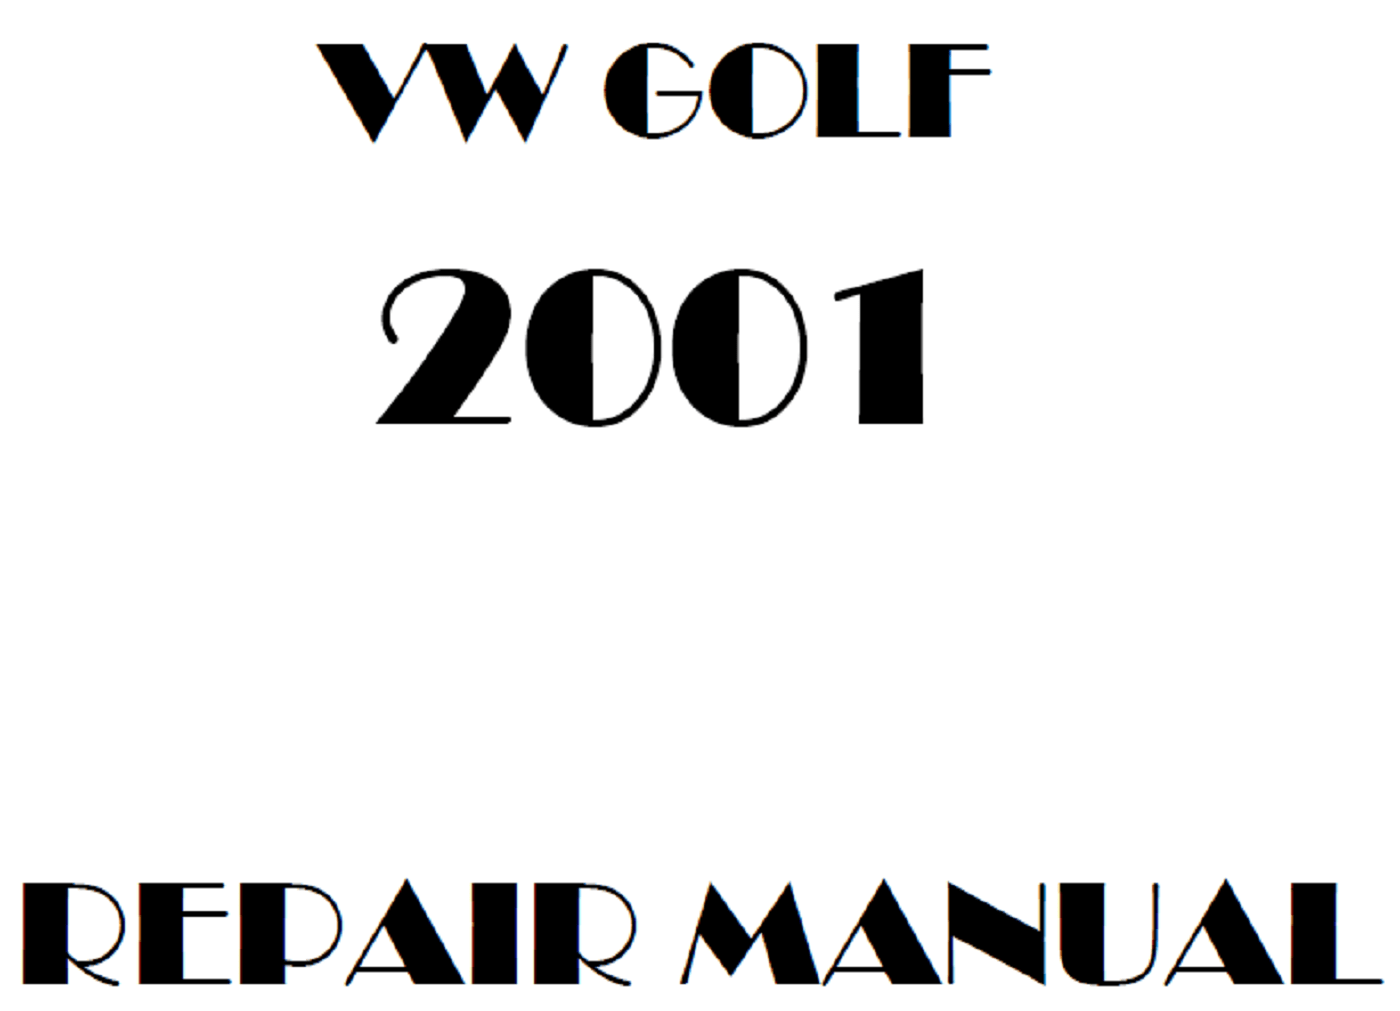 2001 Volkswagen Golf repair manual